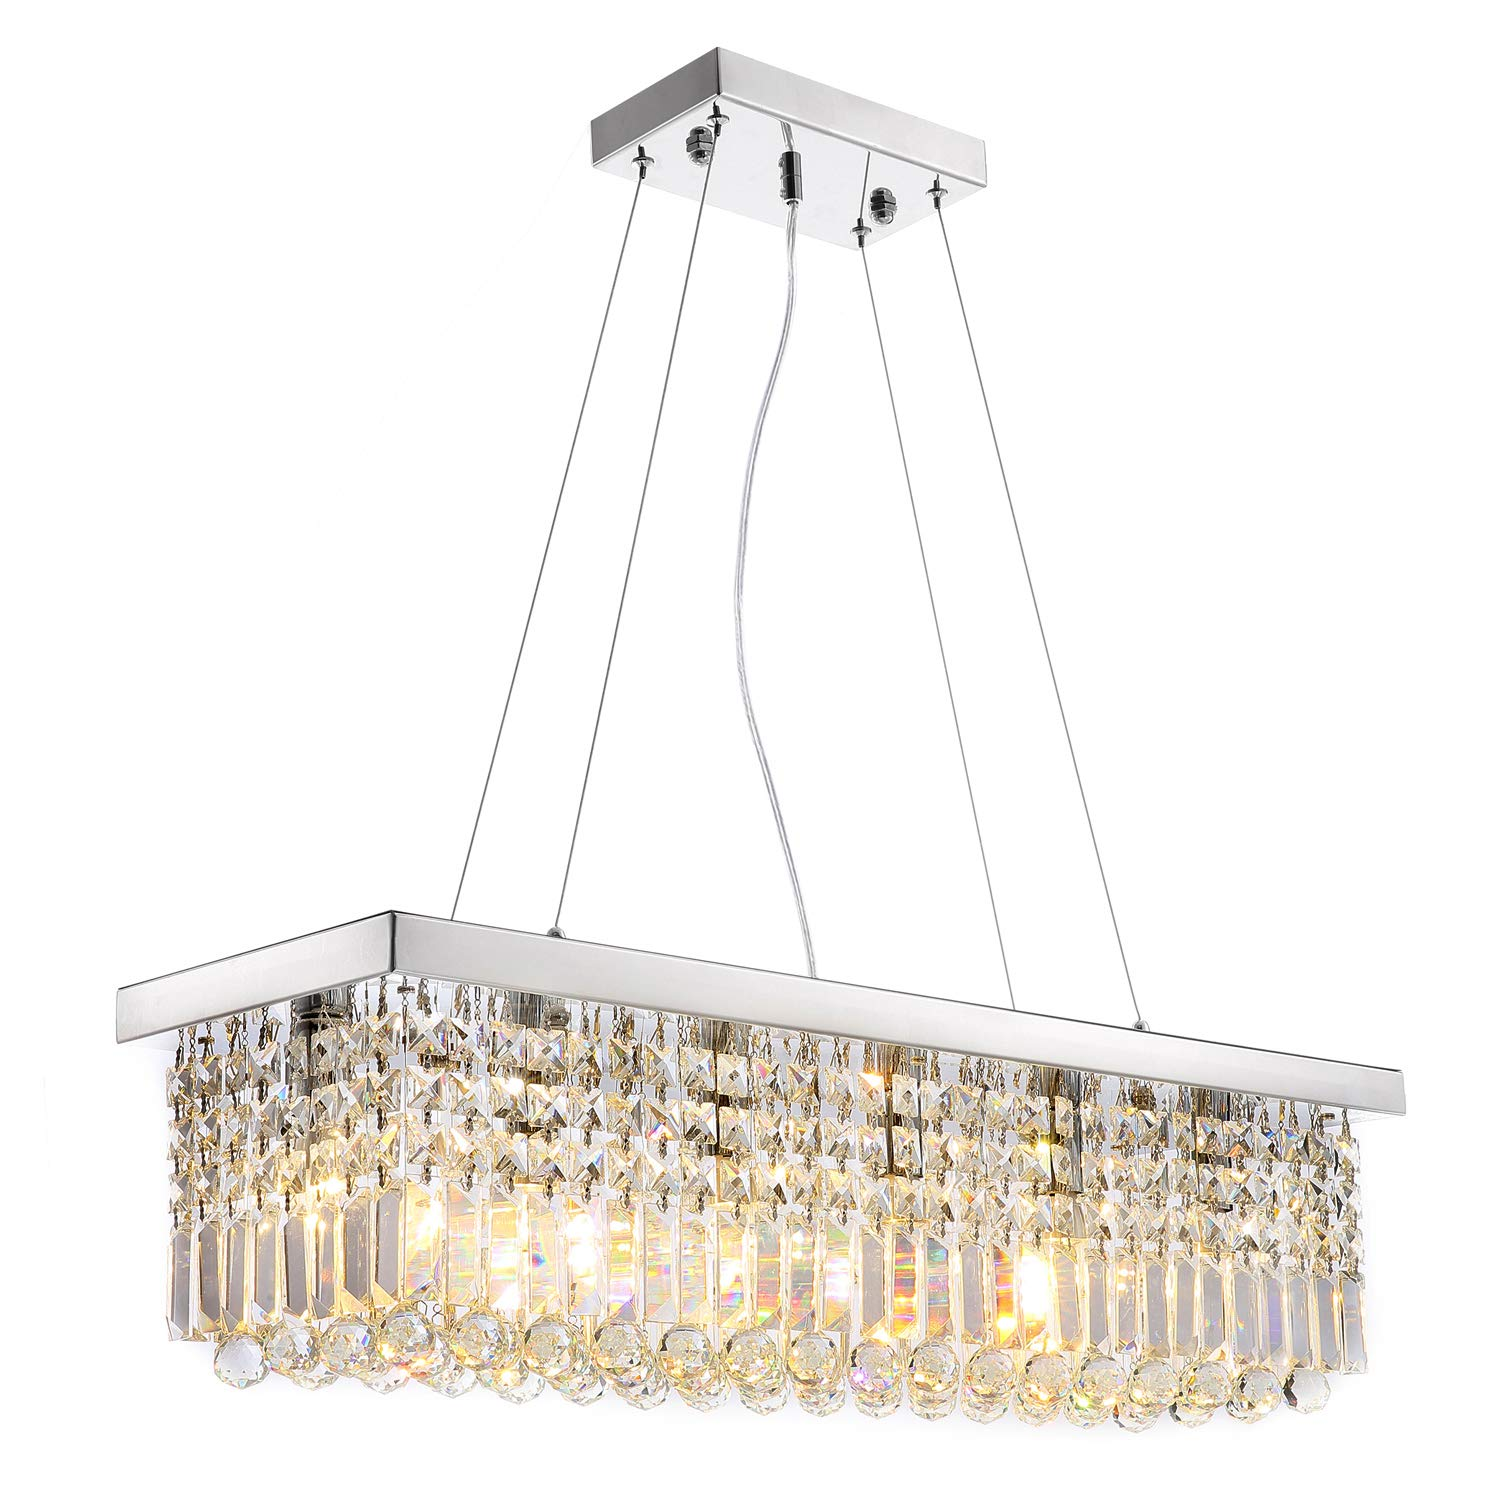 Siljoy modern k9 crystal pendant chandelier lighting rectangular ceiling light fixture for dining room kitchen island l31 5 x w9 9 x h8 9 amazon com